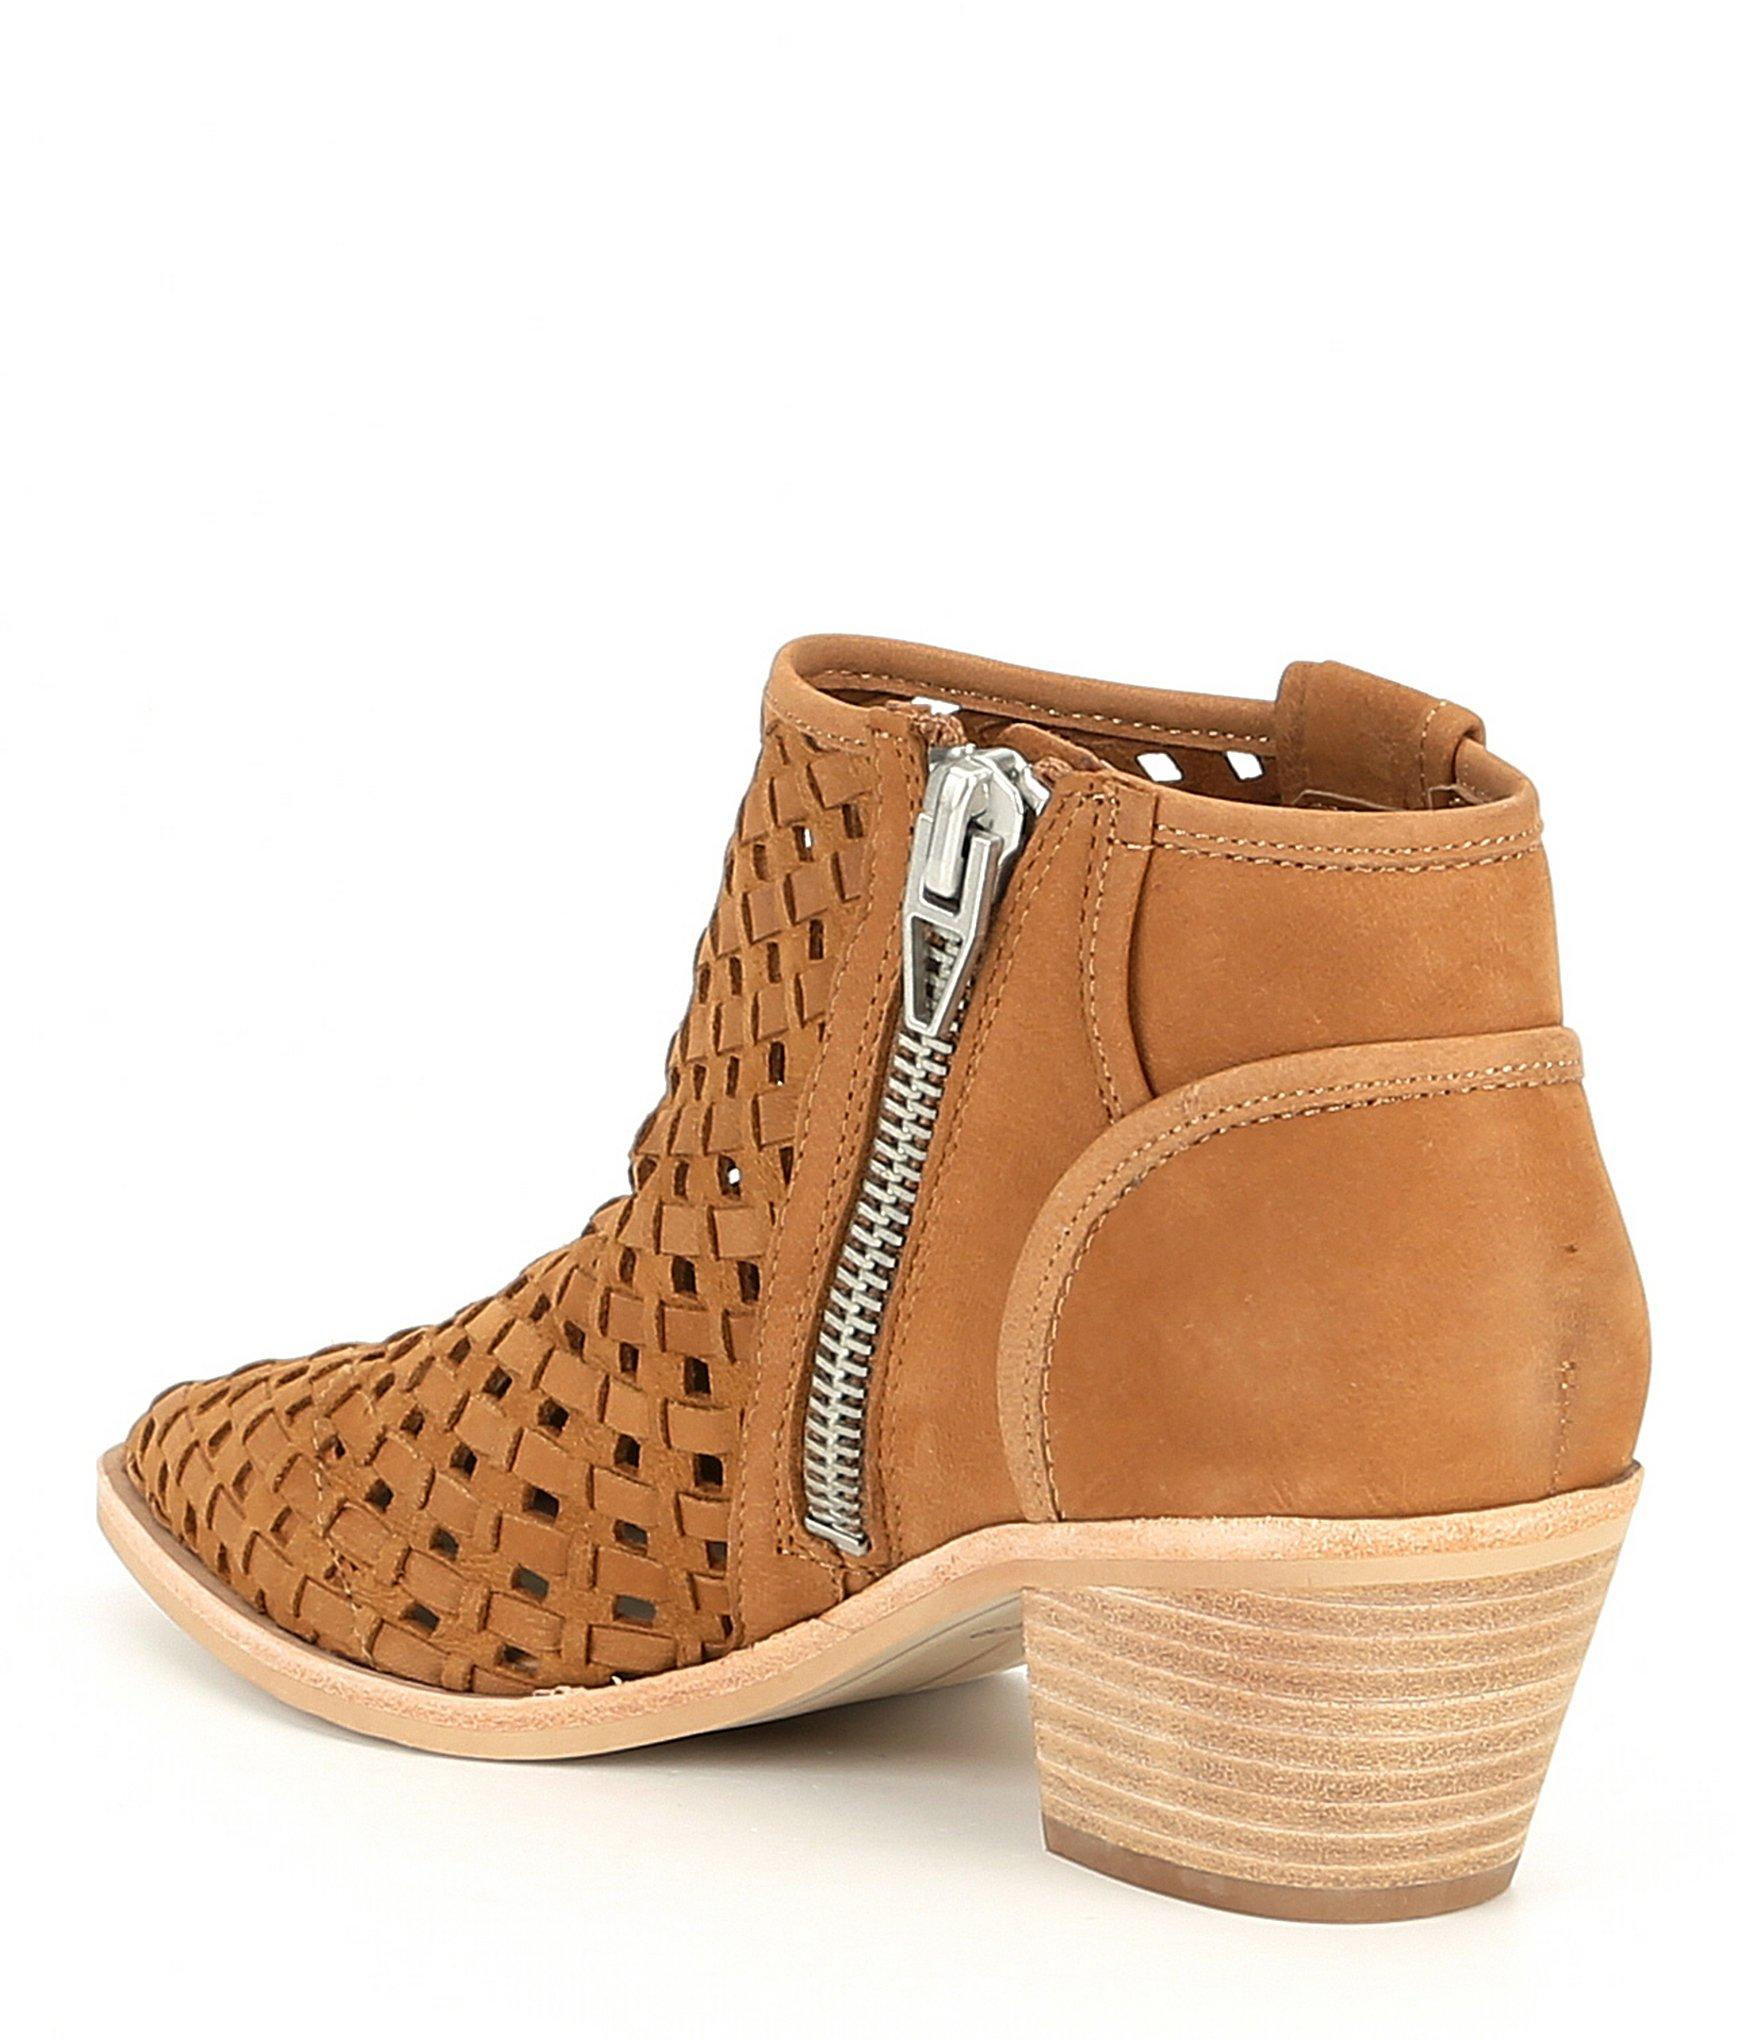 920ef061473 Dolce Vita - Brown Spence Perforated Leather Block Heel Booties - Lyst.  View fullscreen